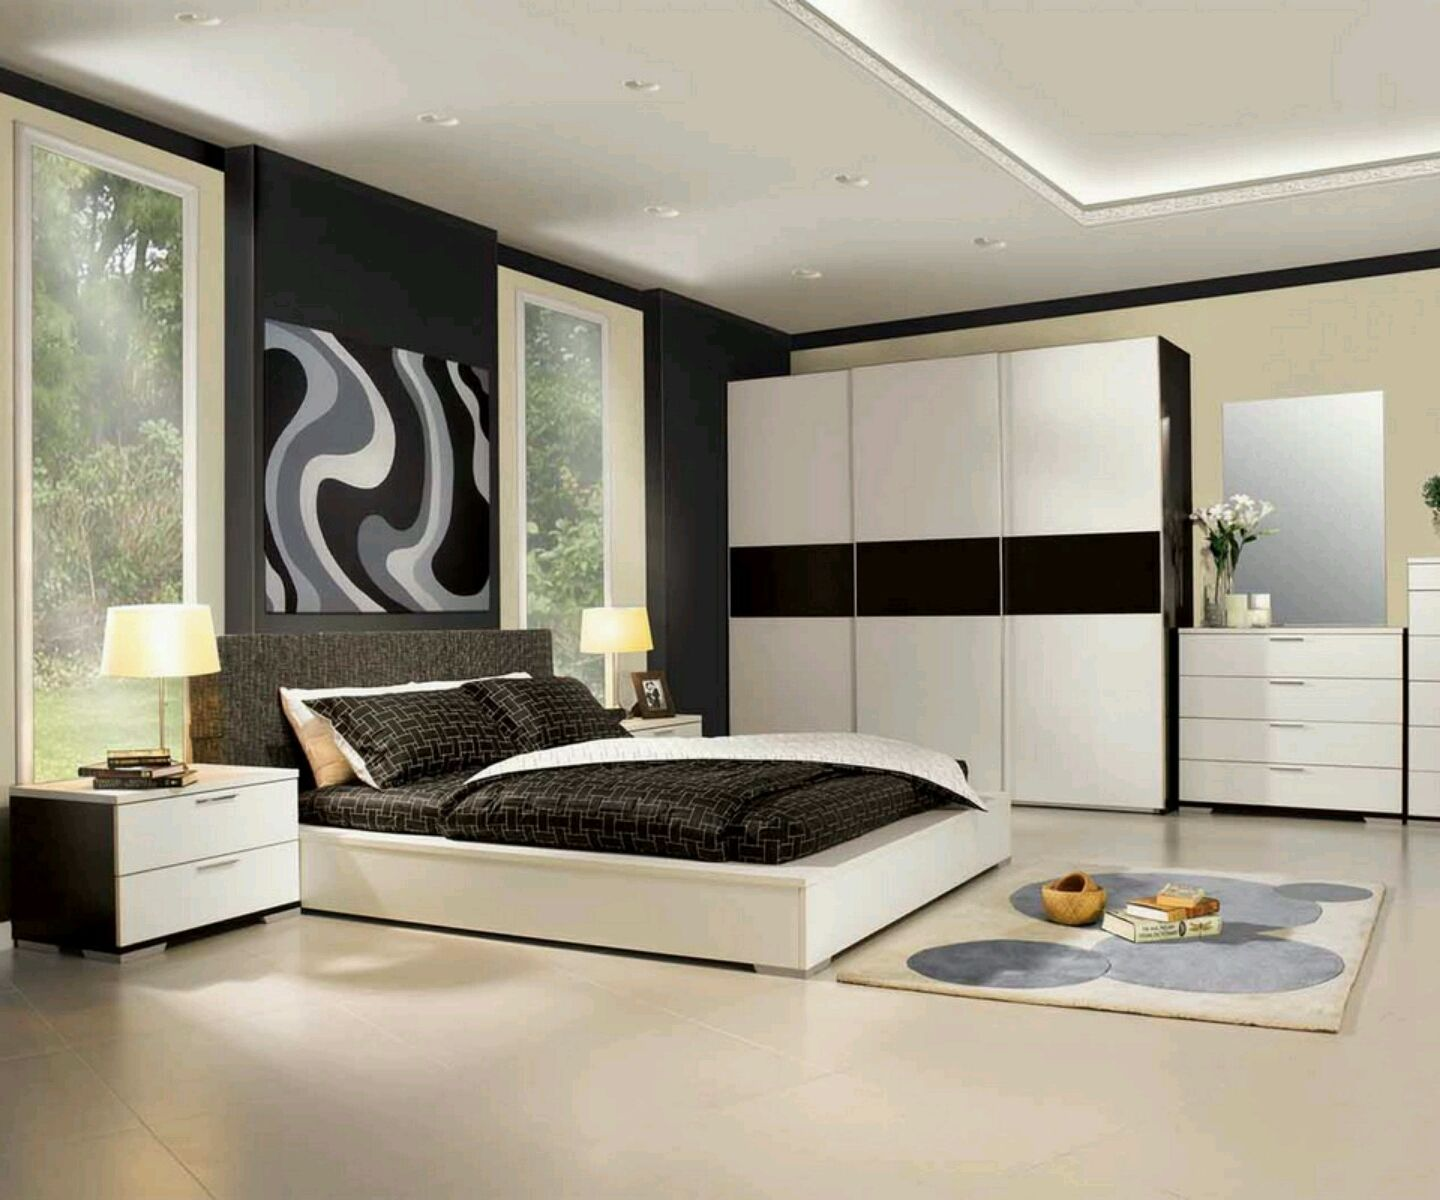 Modern Bedroom Furniture Design For more pictures and design ideas     Modern Bedroom Furniture Design For more pictures and design ideas  please  visit my blog http   pesonashop com